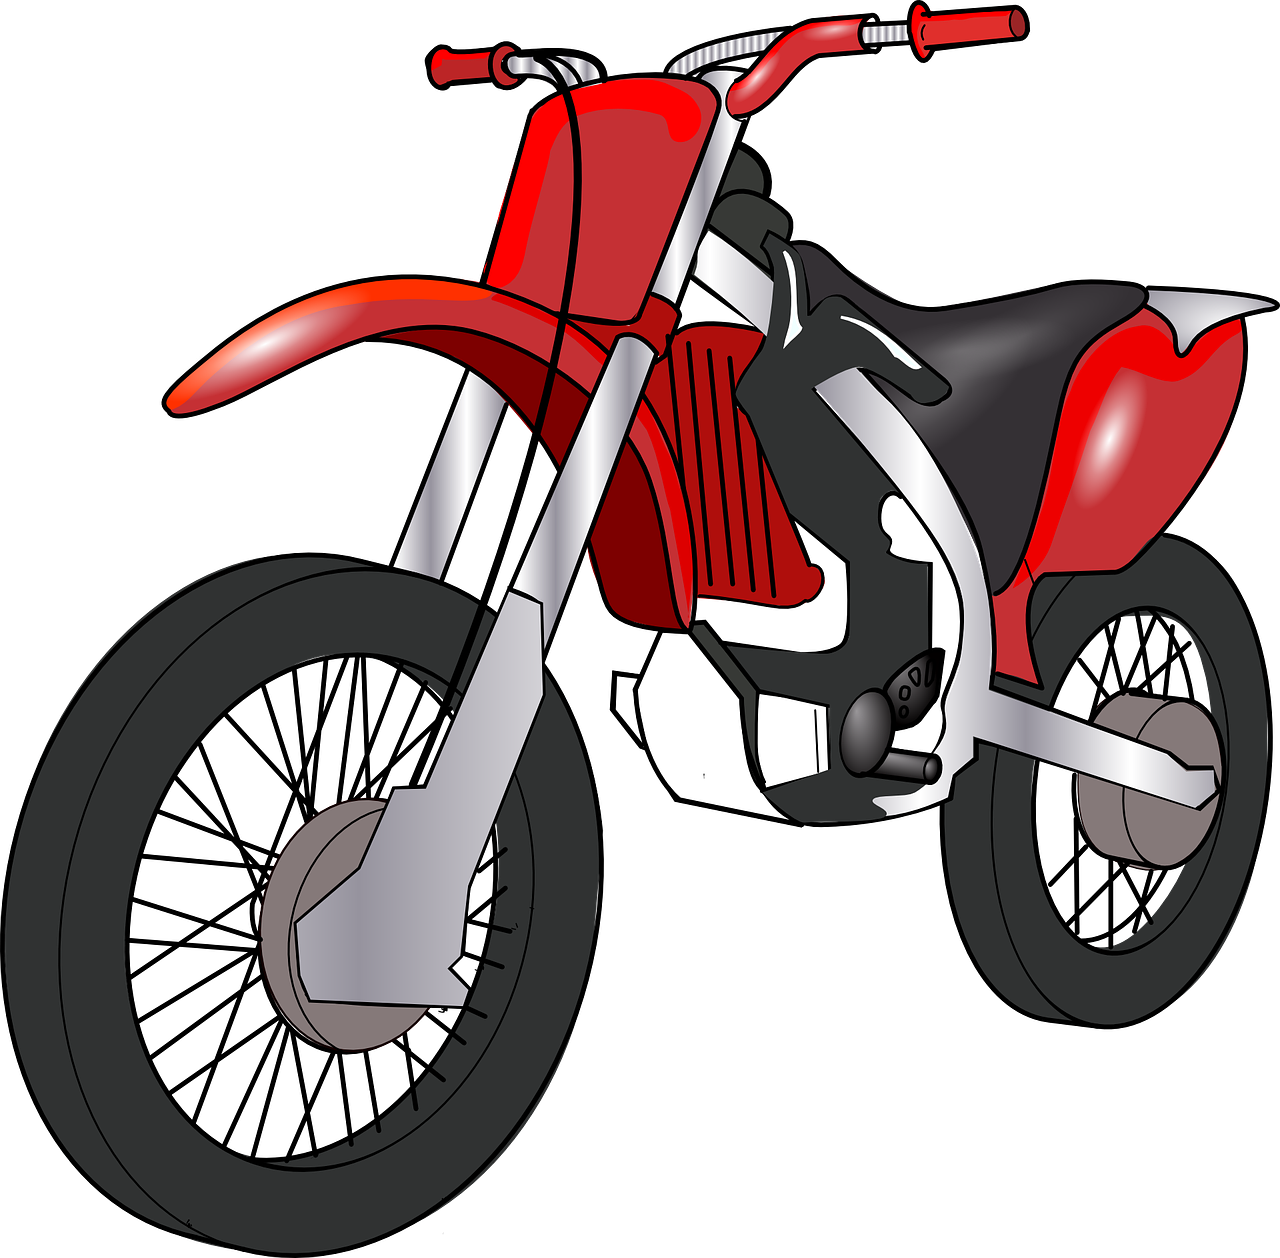 1280x1258 Motorcycle Harley Davidson Scooter Clip Art